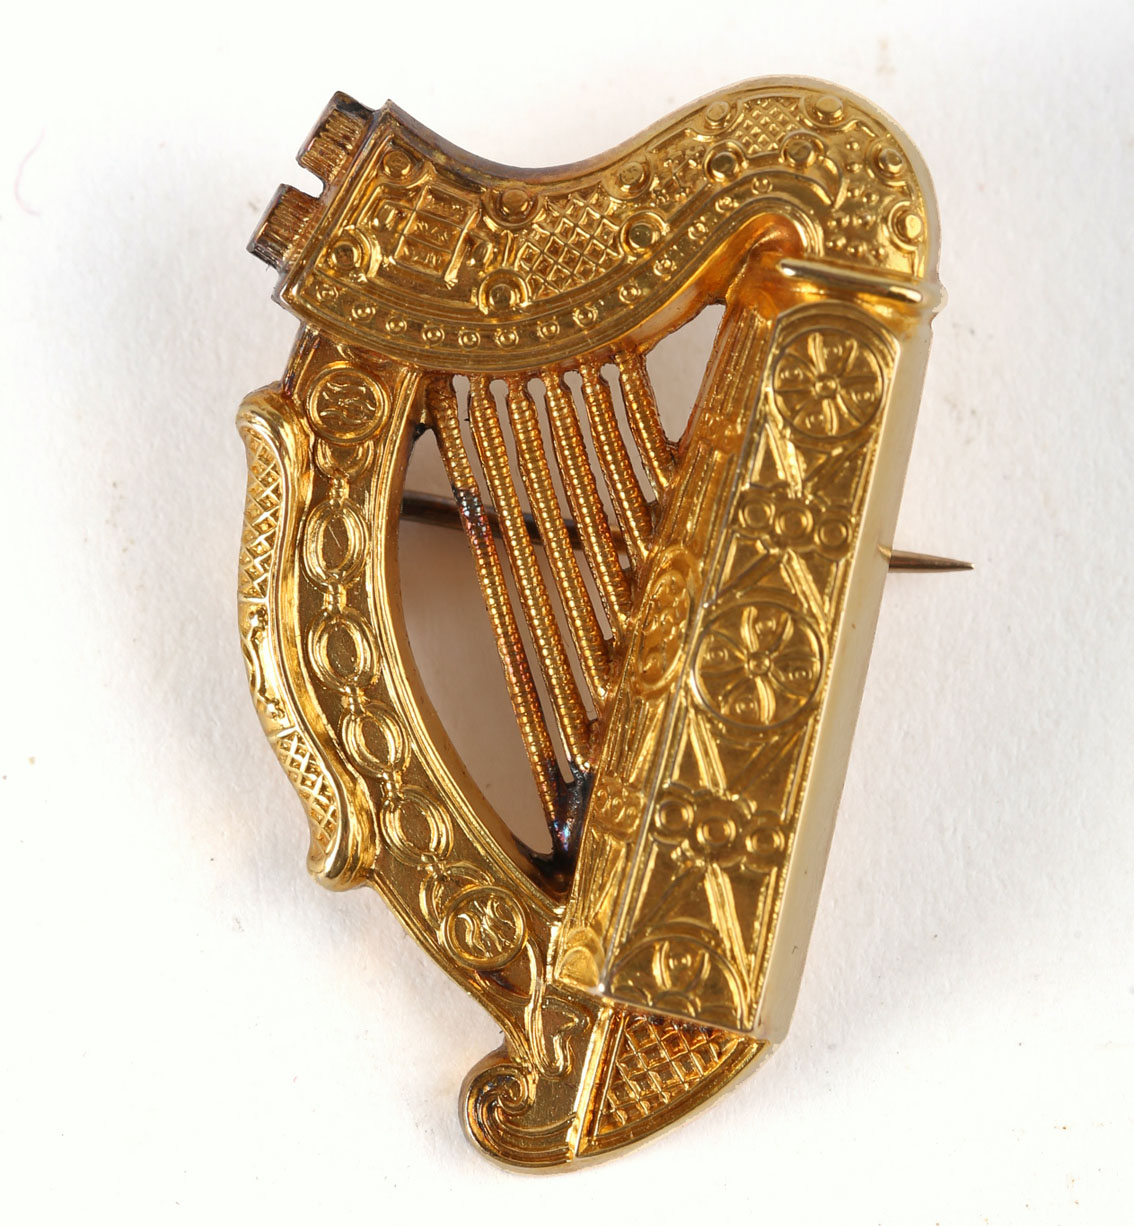 A Victorian Irish gold harp brooch by Hopkins & Hopkins, Dublin, modelled on the Trinity College